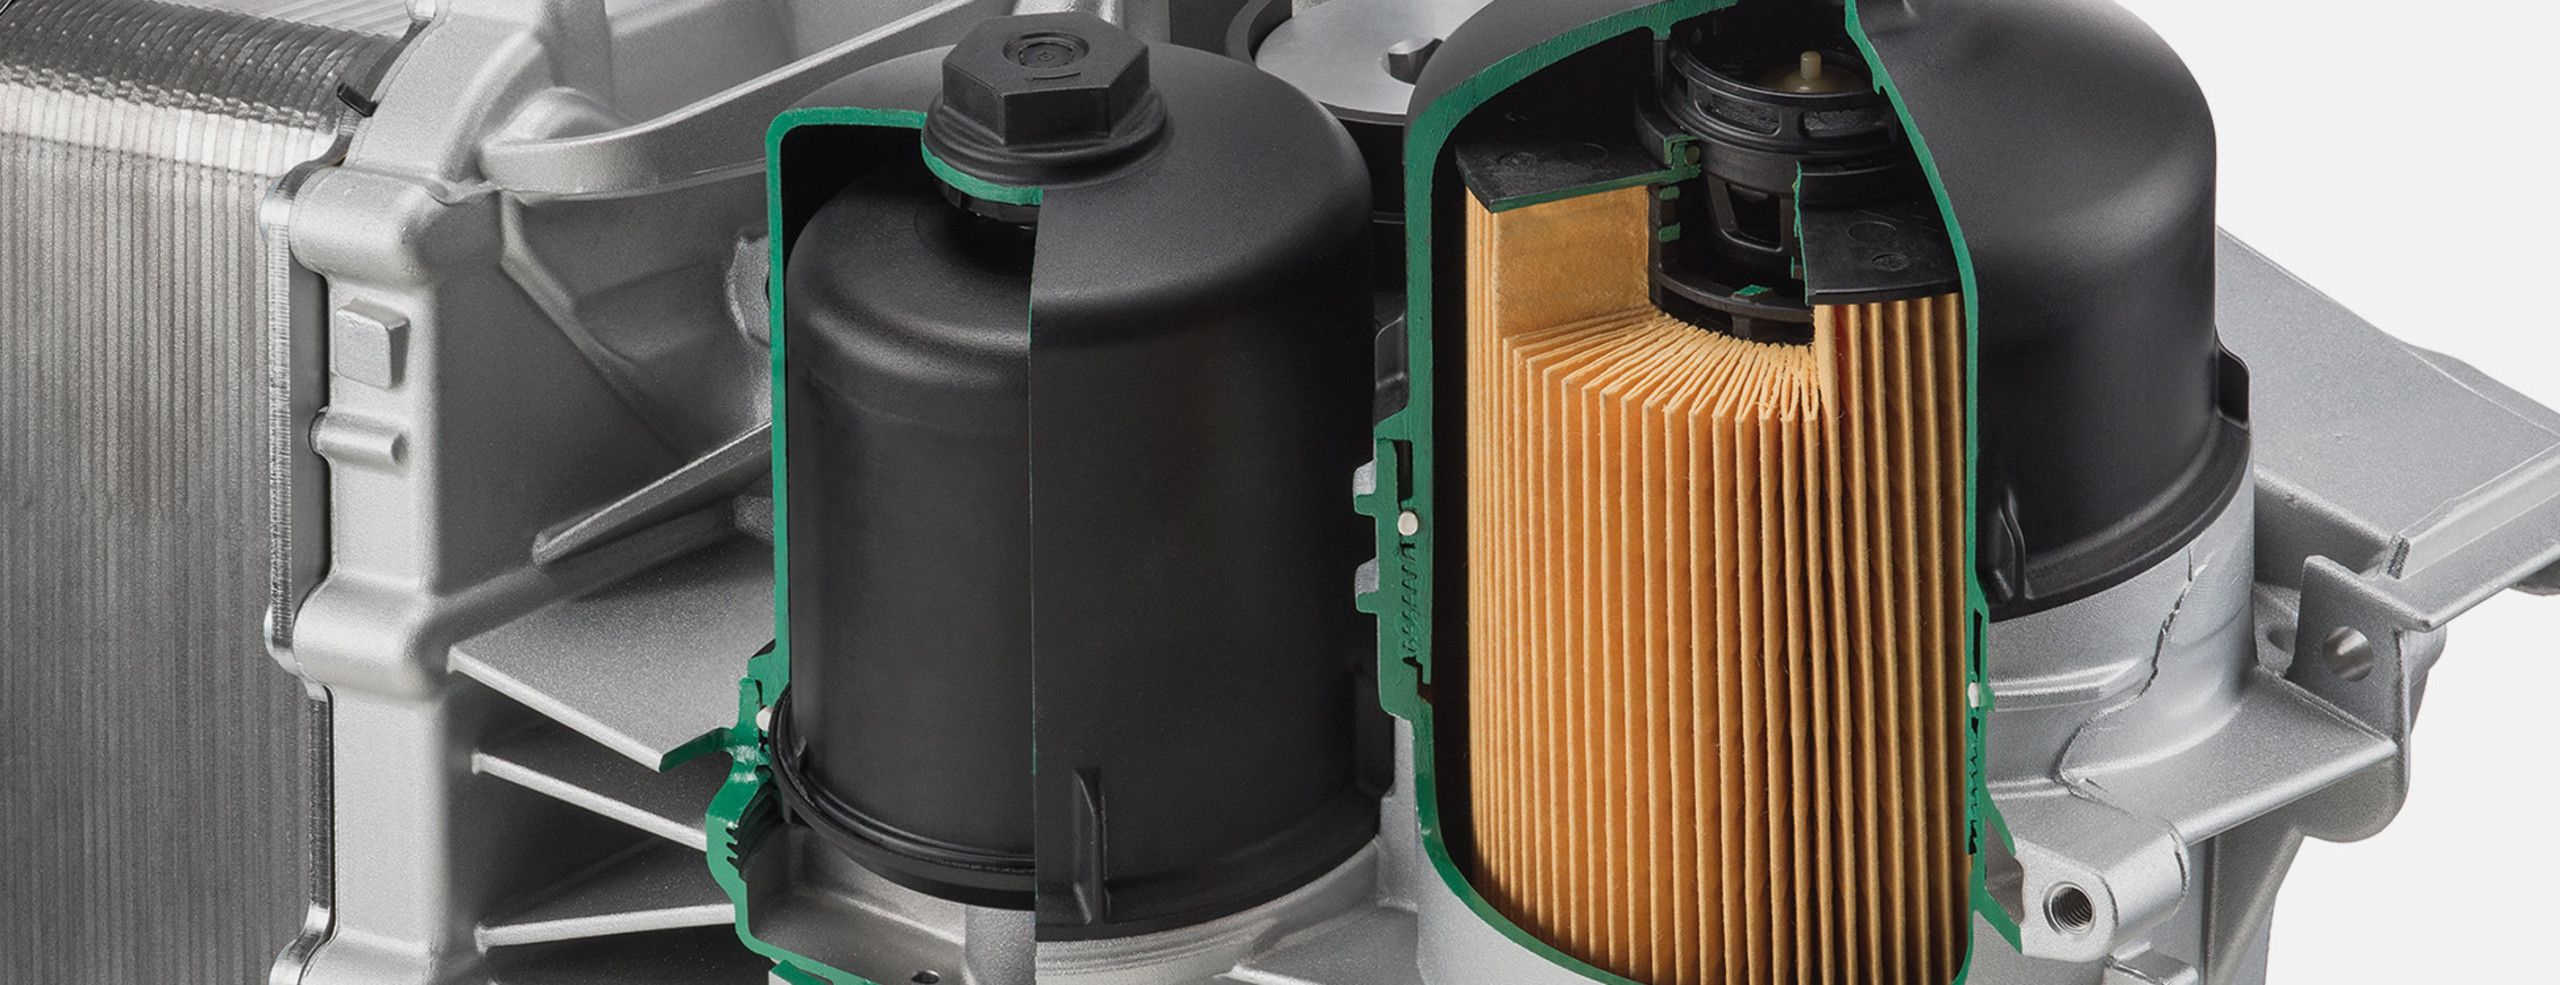 Compact Fuel Filter Module Integrates A Variety Of Functions Mann Drain Plug Efficient Oil Numerous